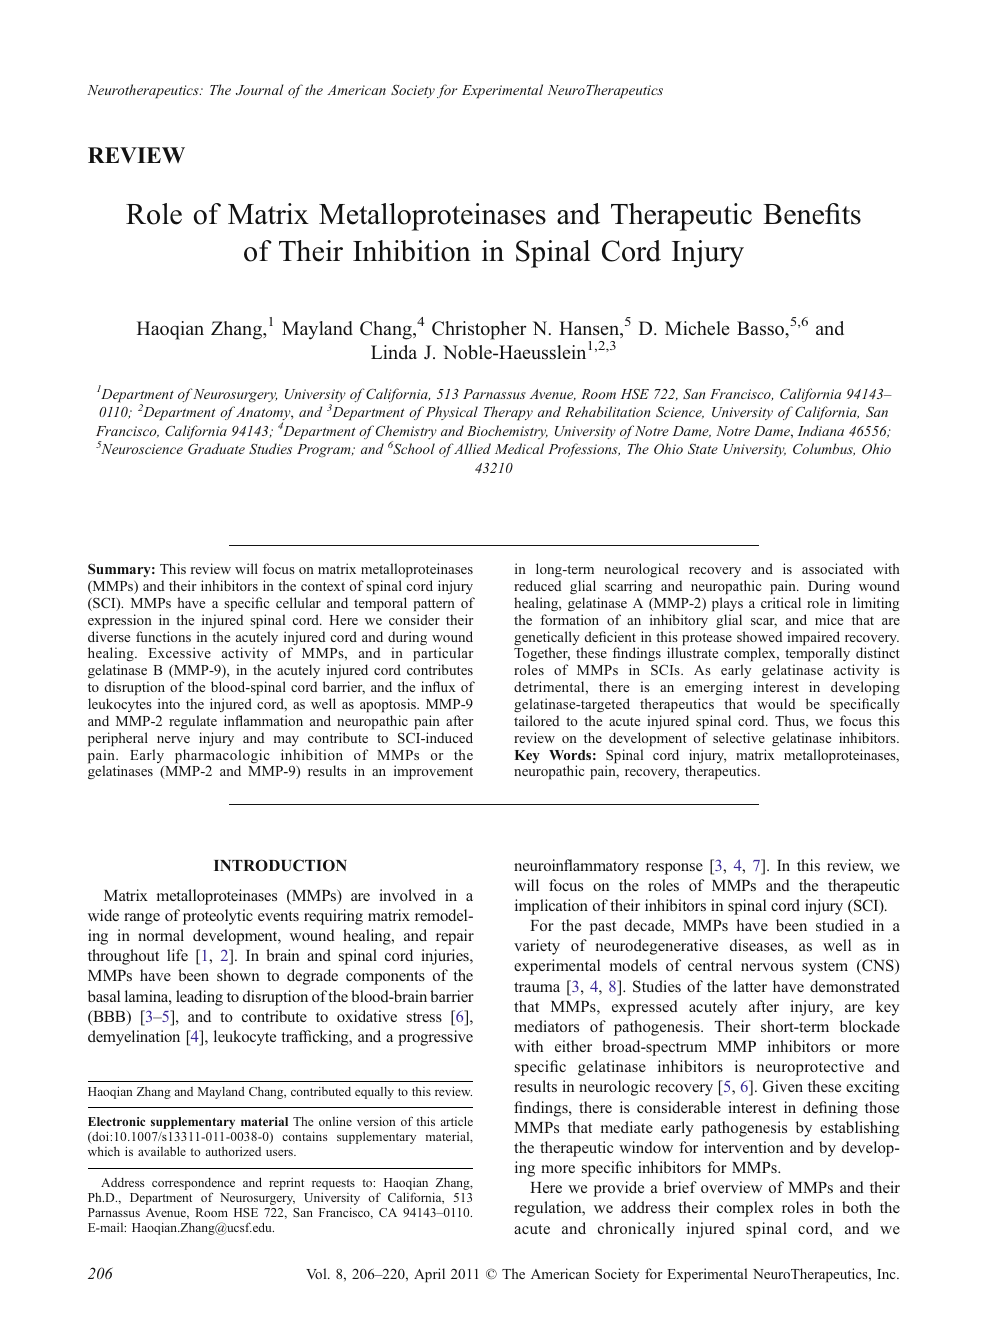 Role of Matrix Metalloproteinases and Therapeutic Benefits